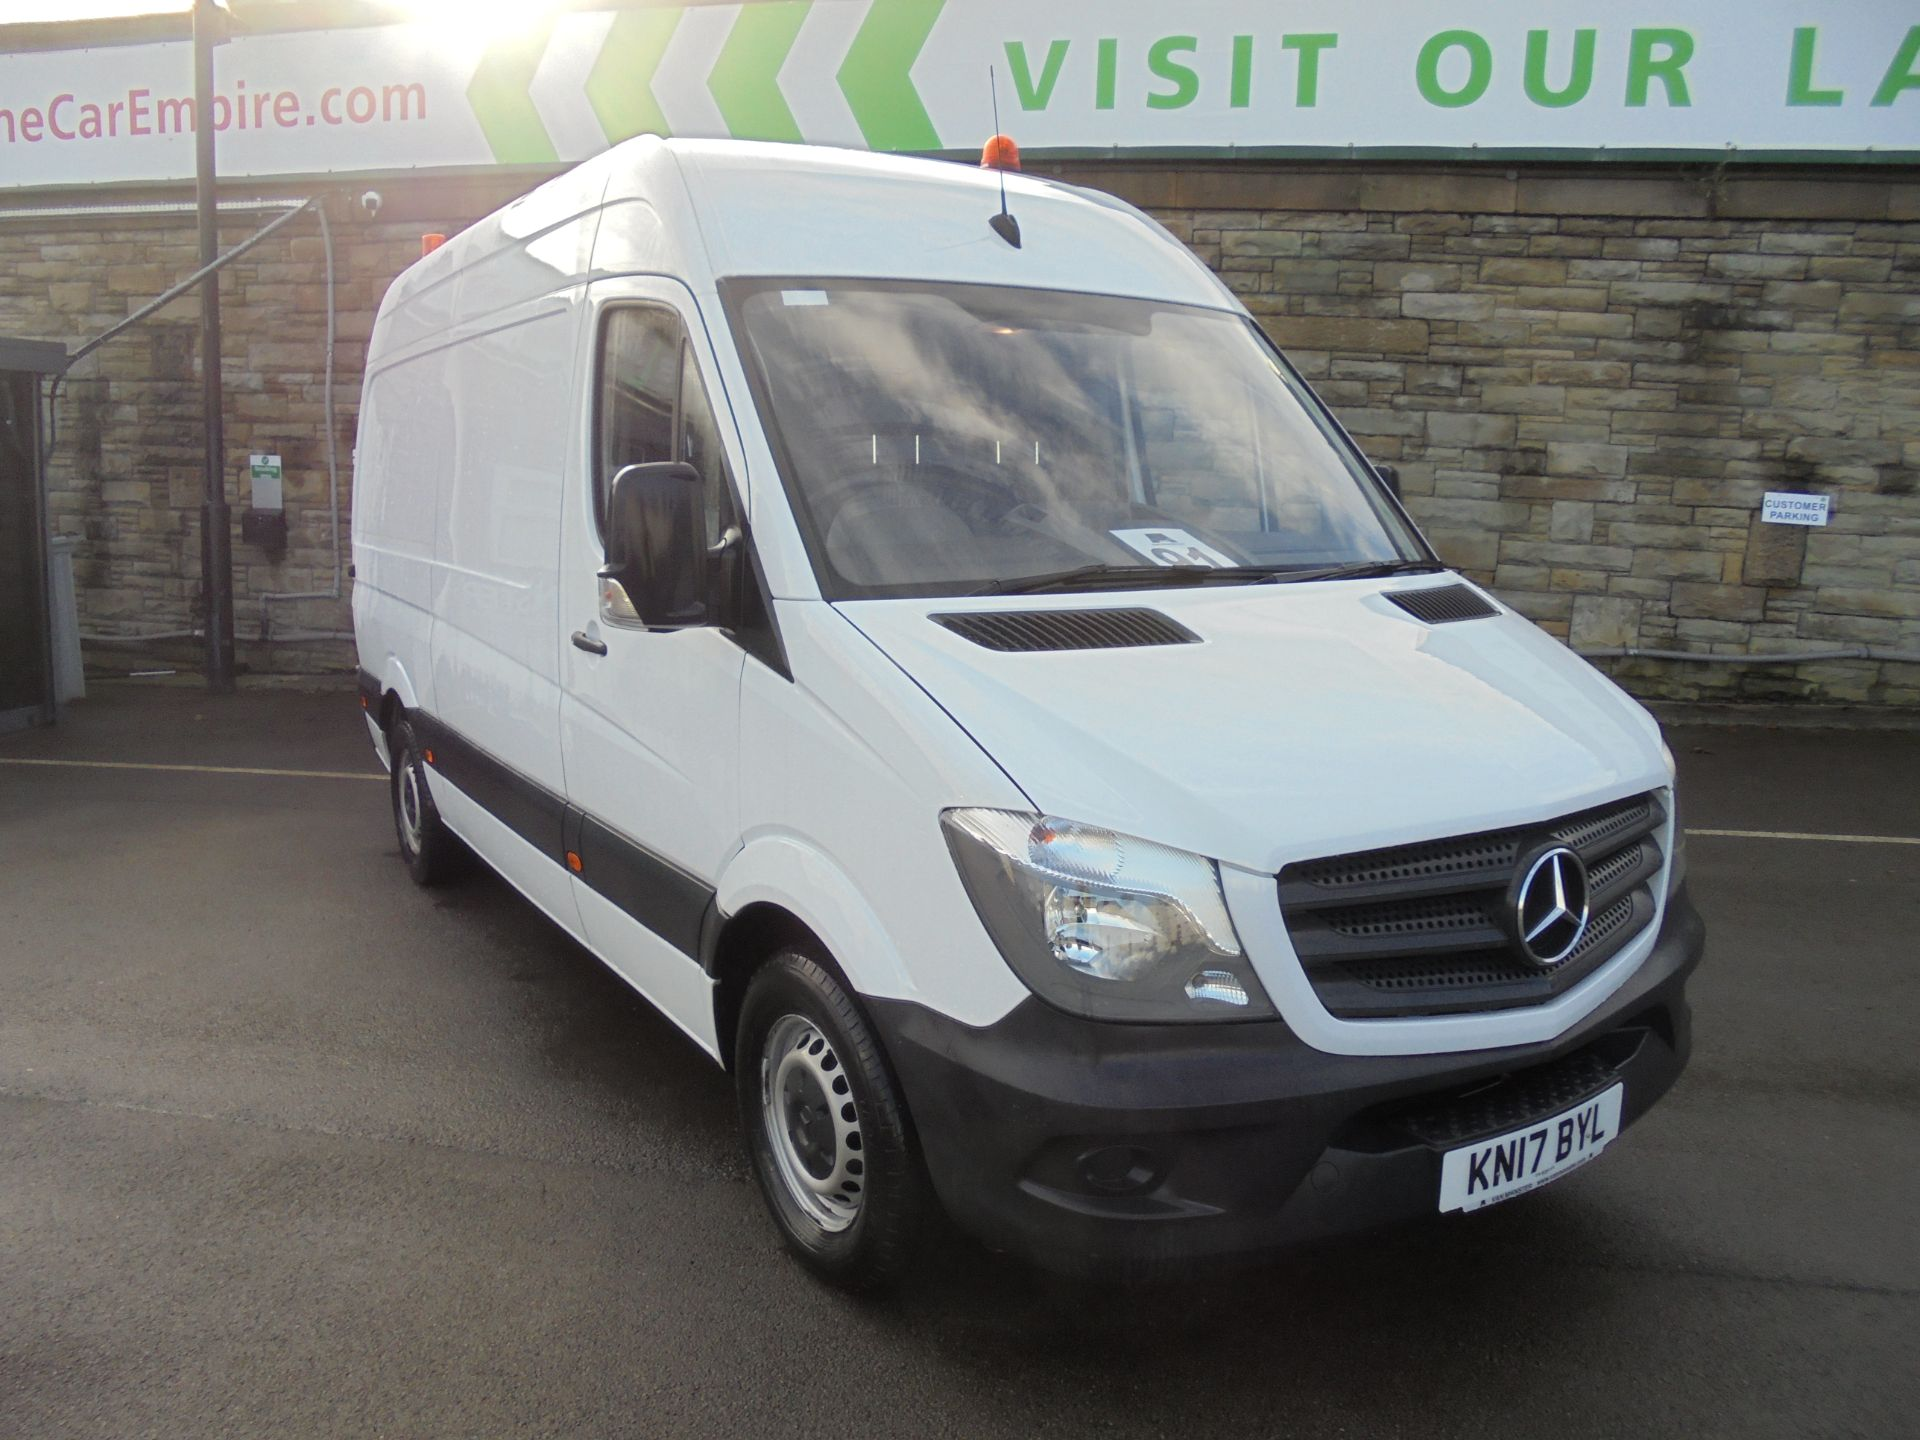 2017 Mercedes-Benz Sprinter 3.5T High Roof Van (KN17BYL)